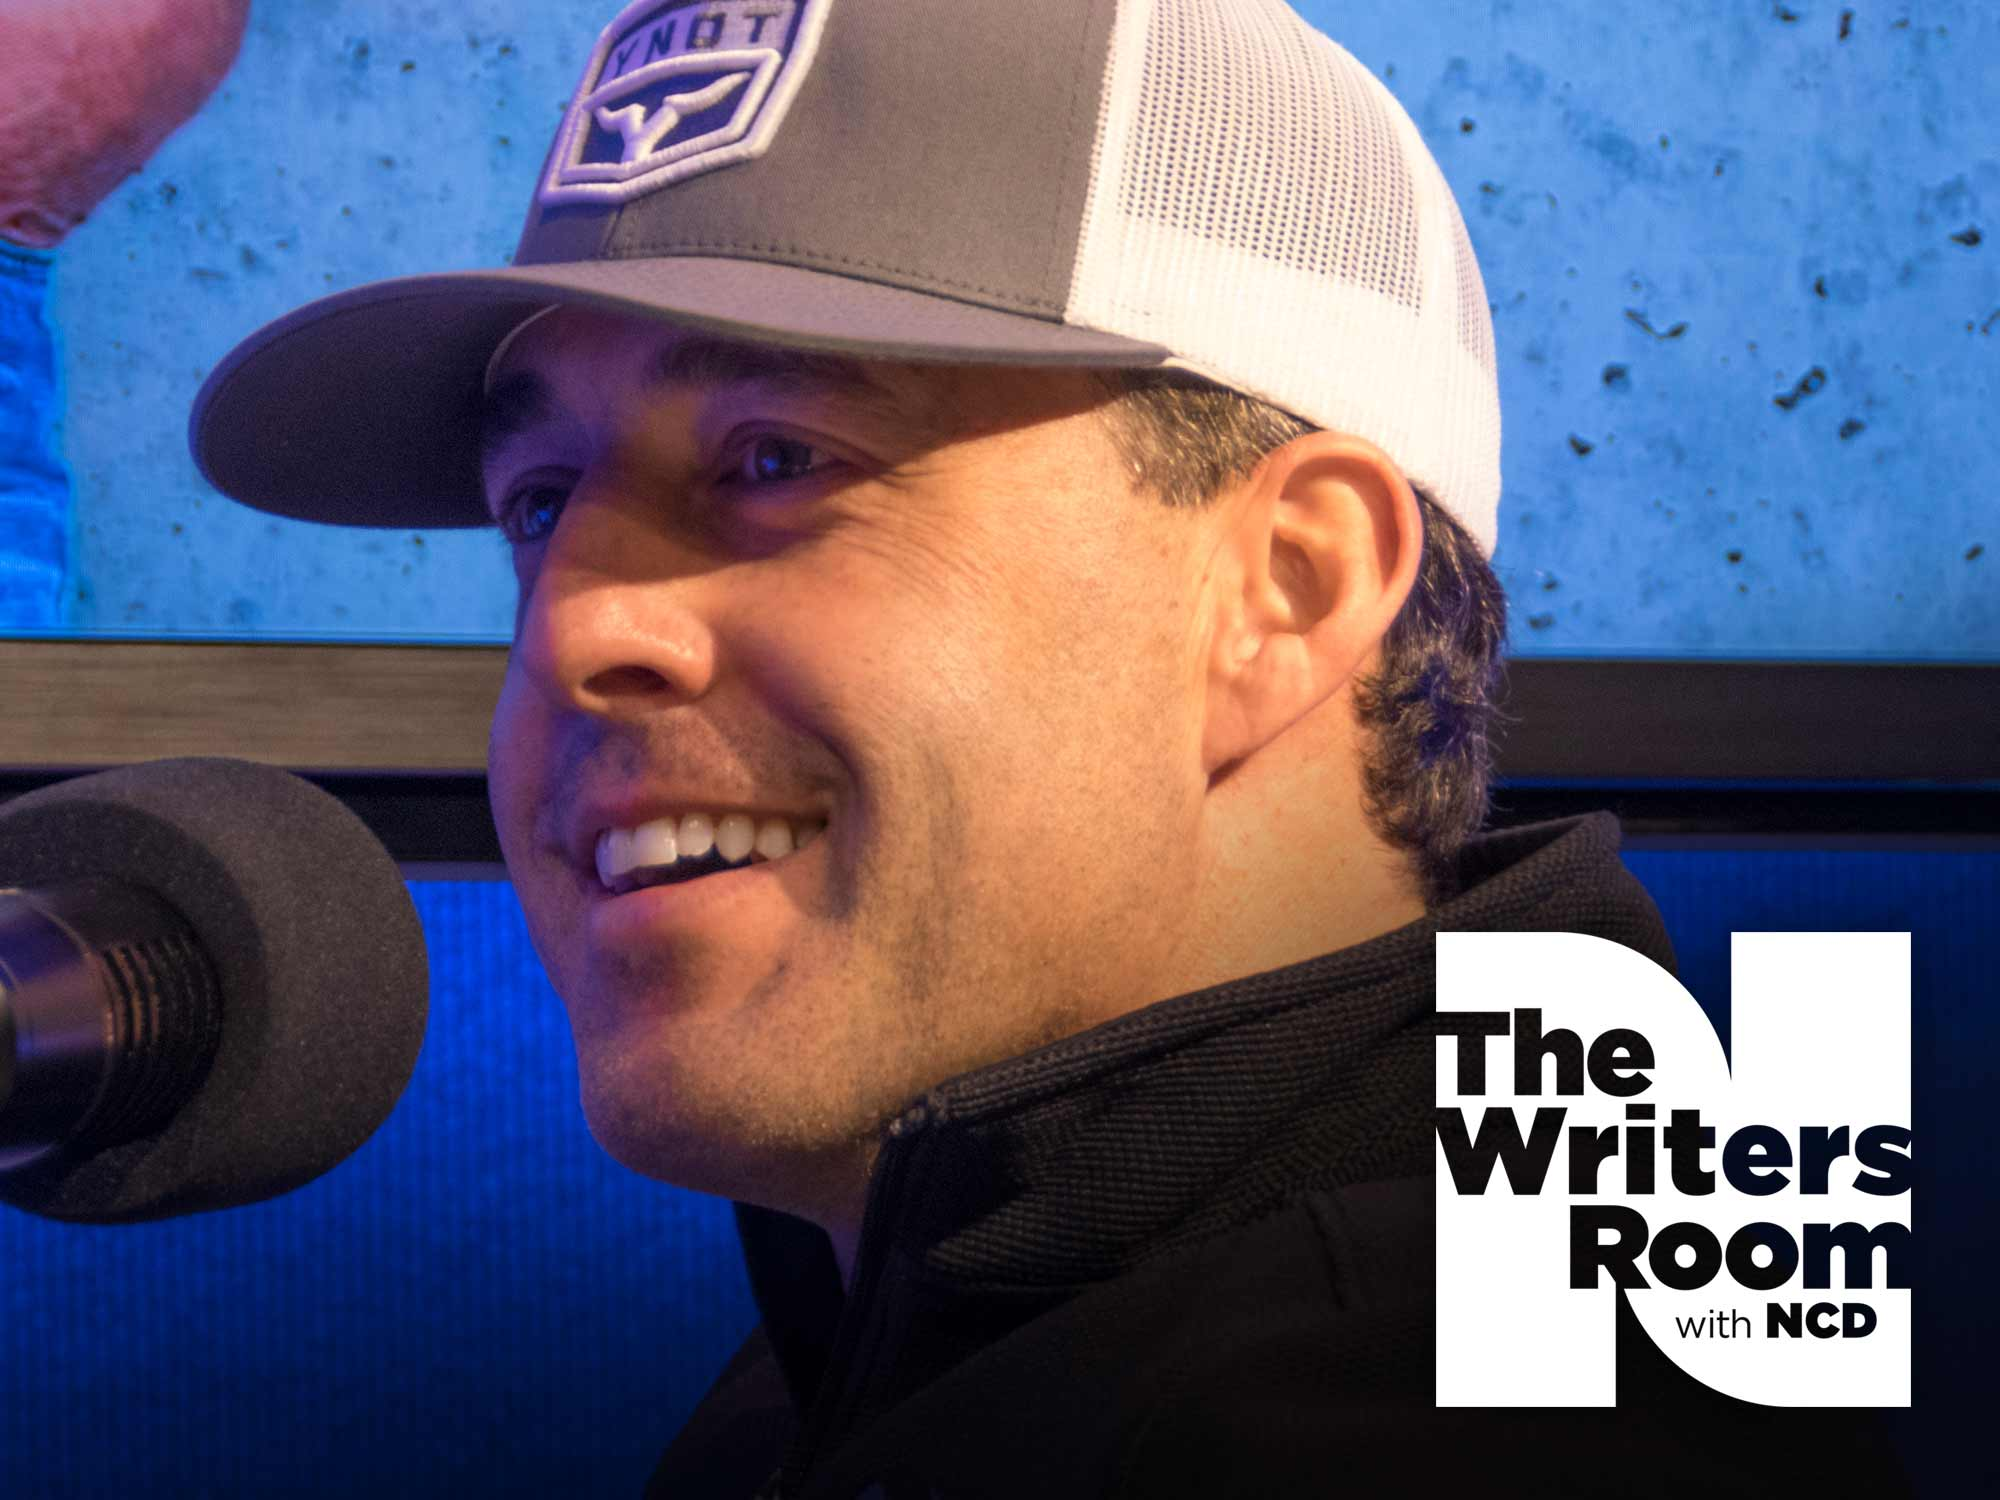 """Aaron Watson Talks About the """"Healthy Chip"""" on His Shoulder, Making Independent Music & His New Album, """"Vaquero"""""""